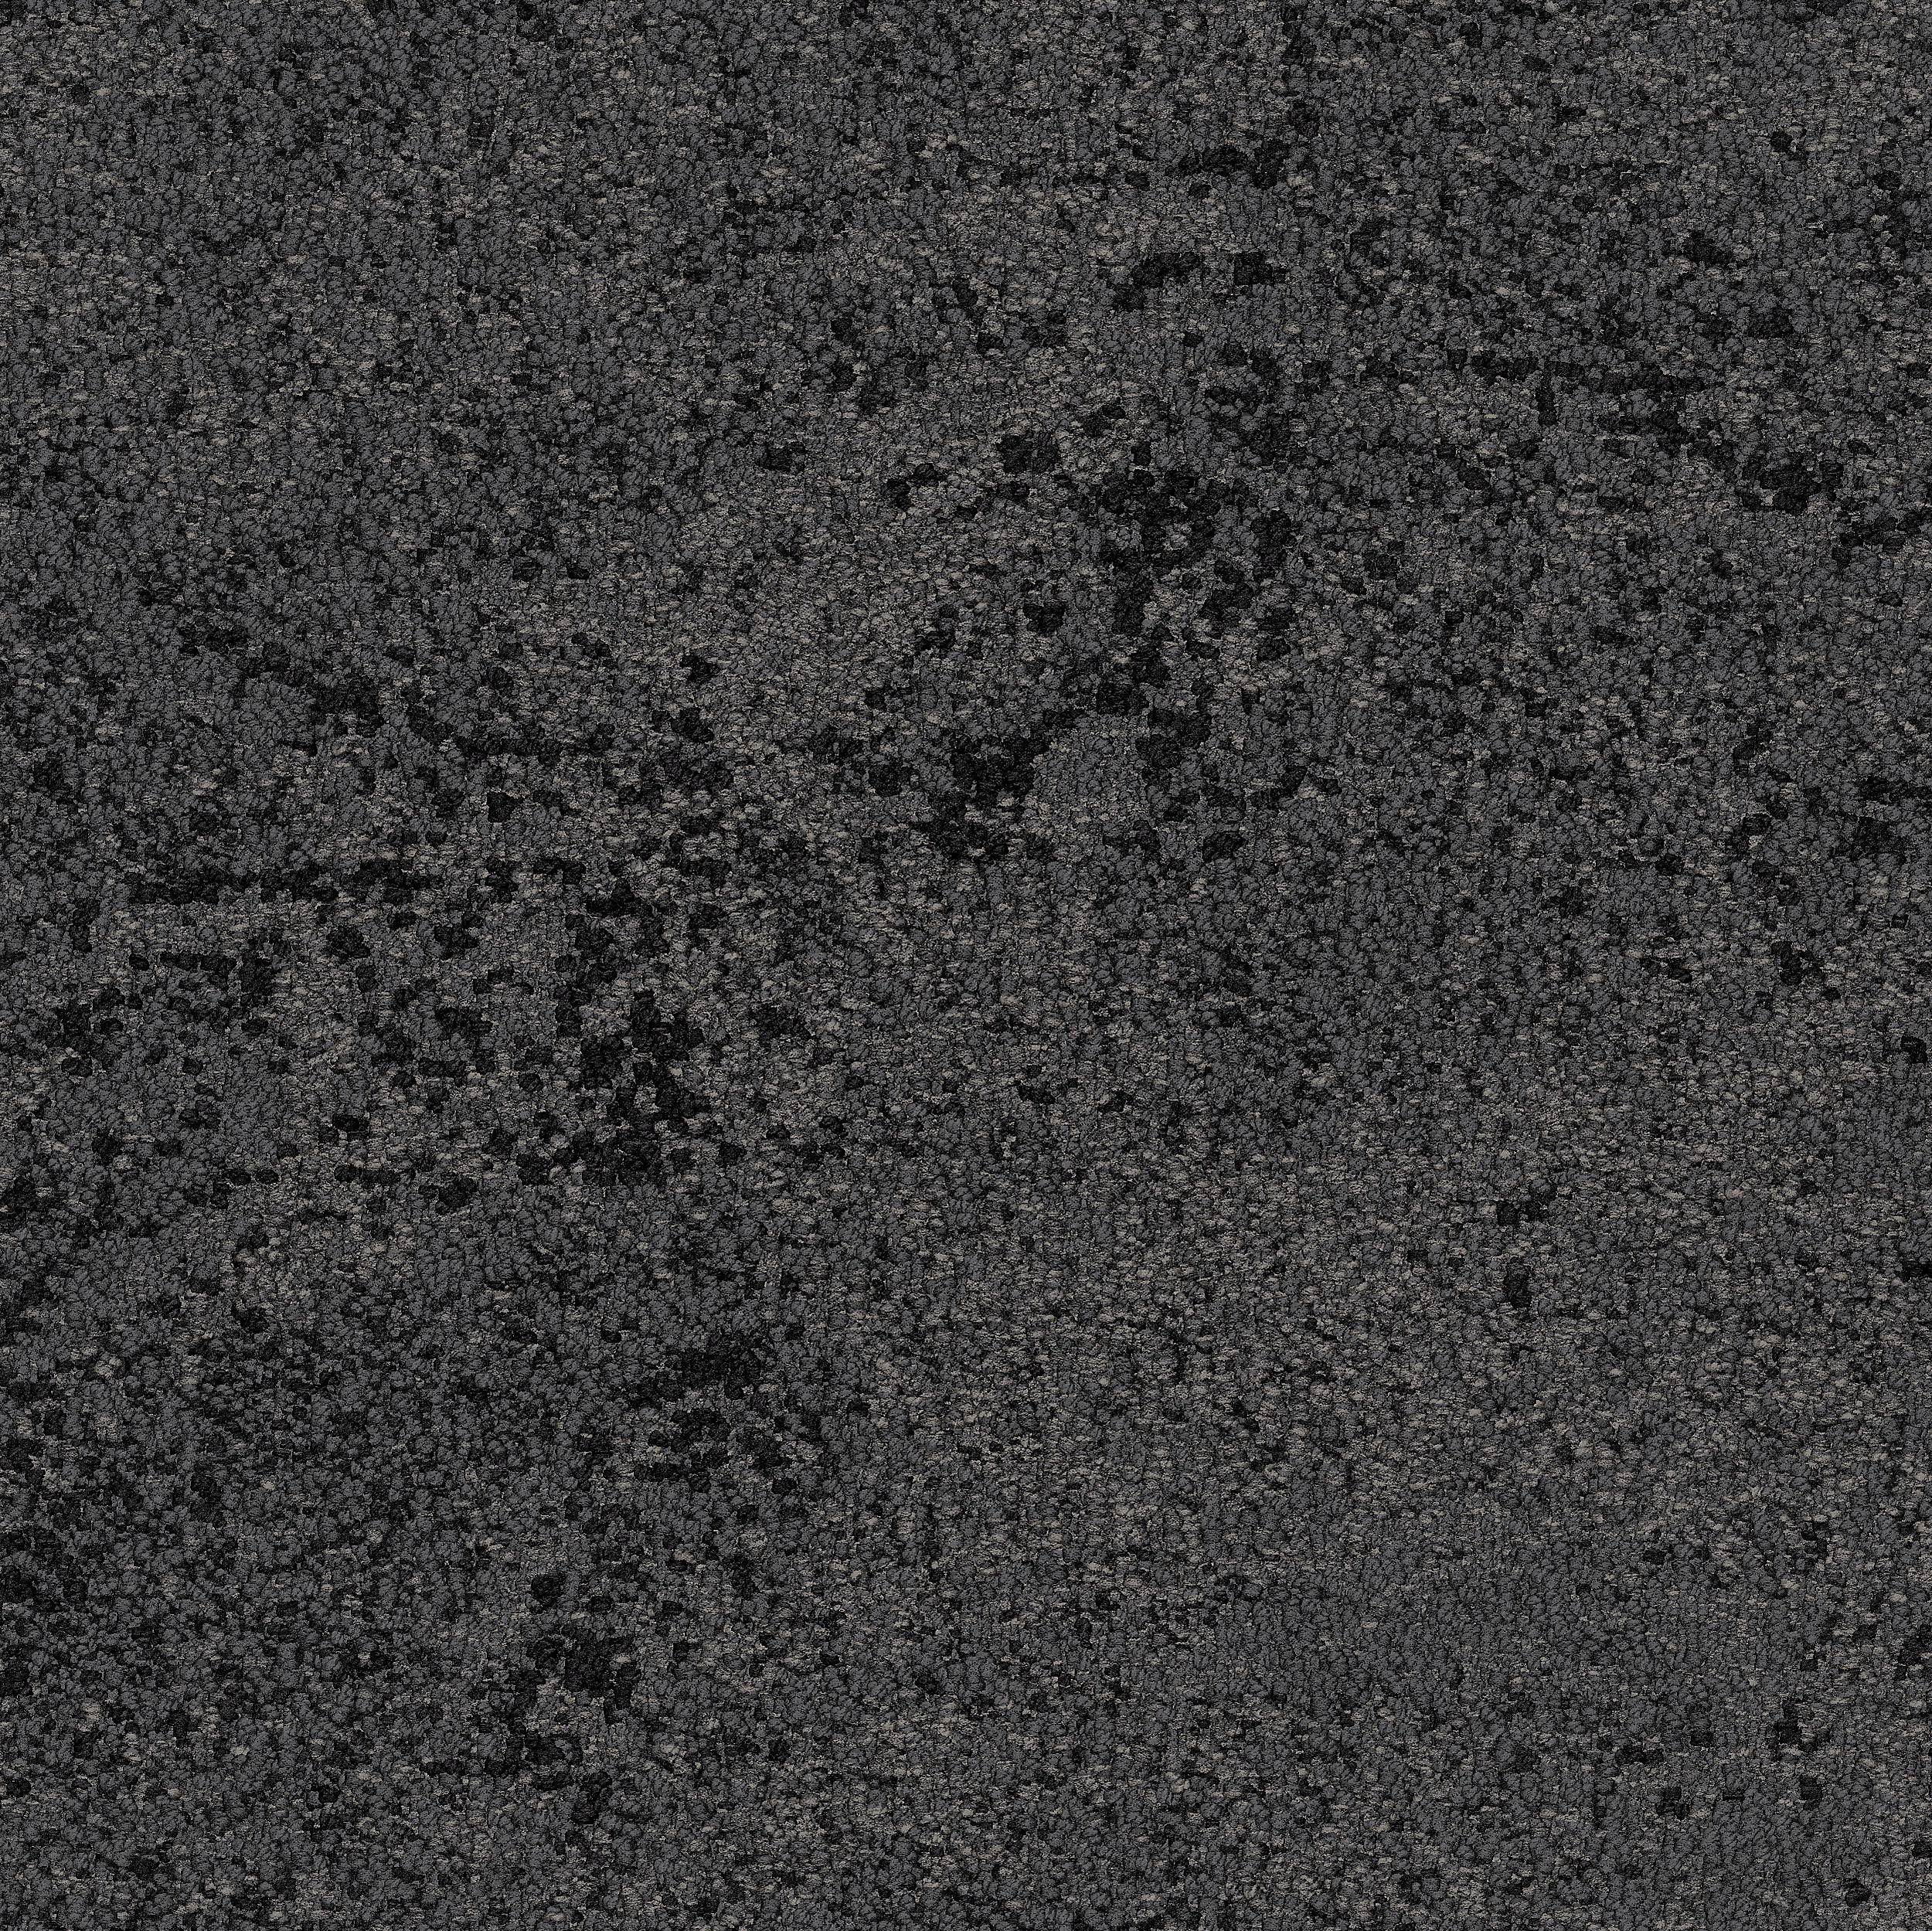 Urban Retreat Ur102 Charcoal Carpet Tiles From Interface